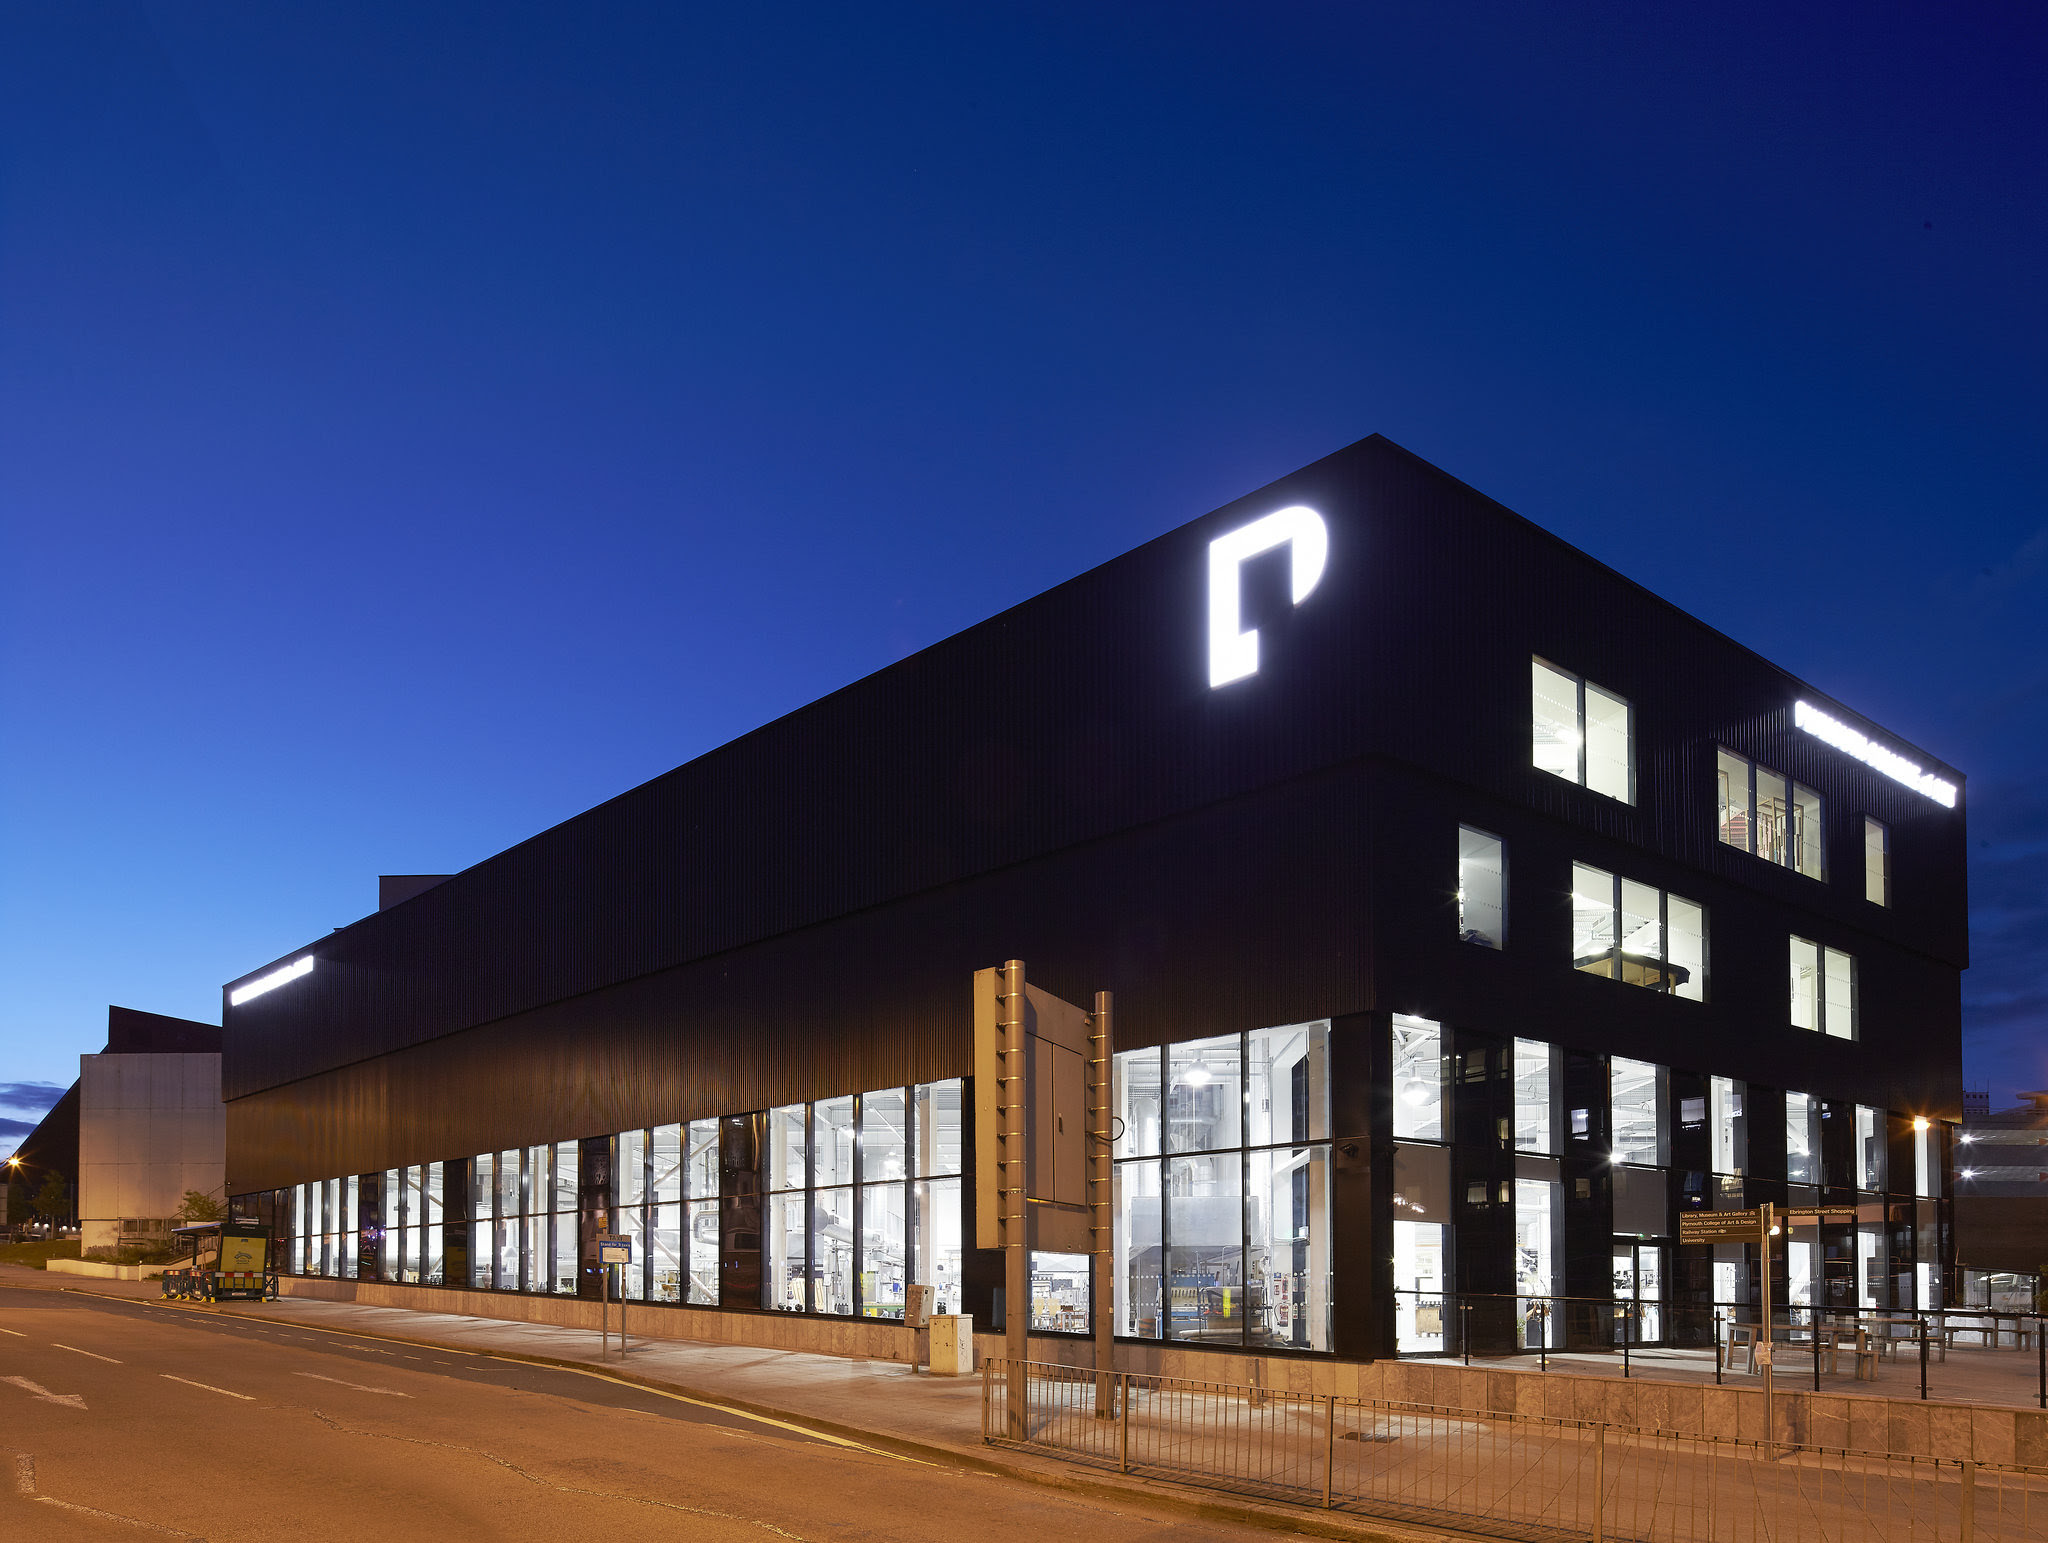 Plymouth College of Art, founders and sponsors of Plymouth School of Creative Arts - Photo by Hufton + Crow Photography